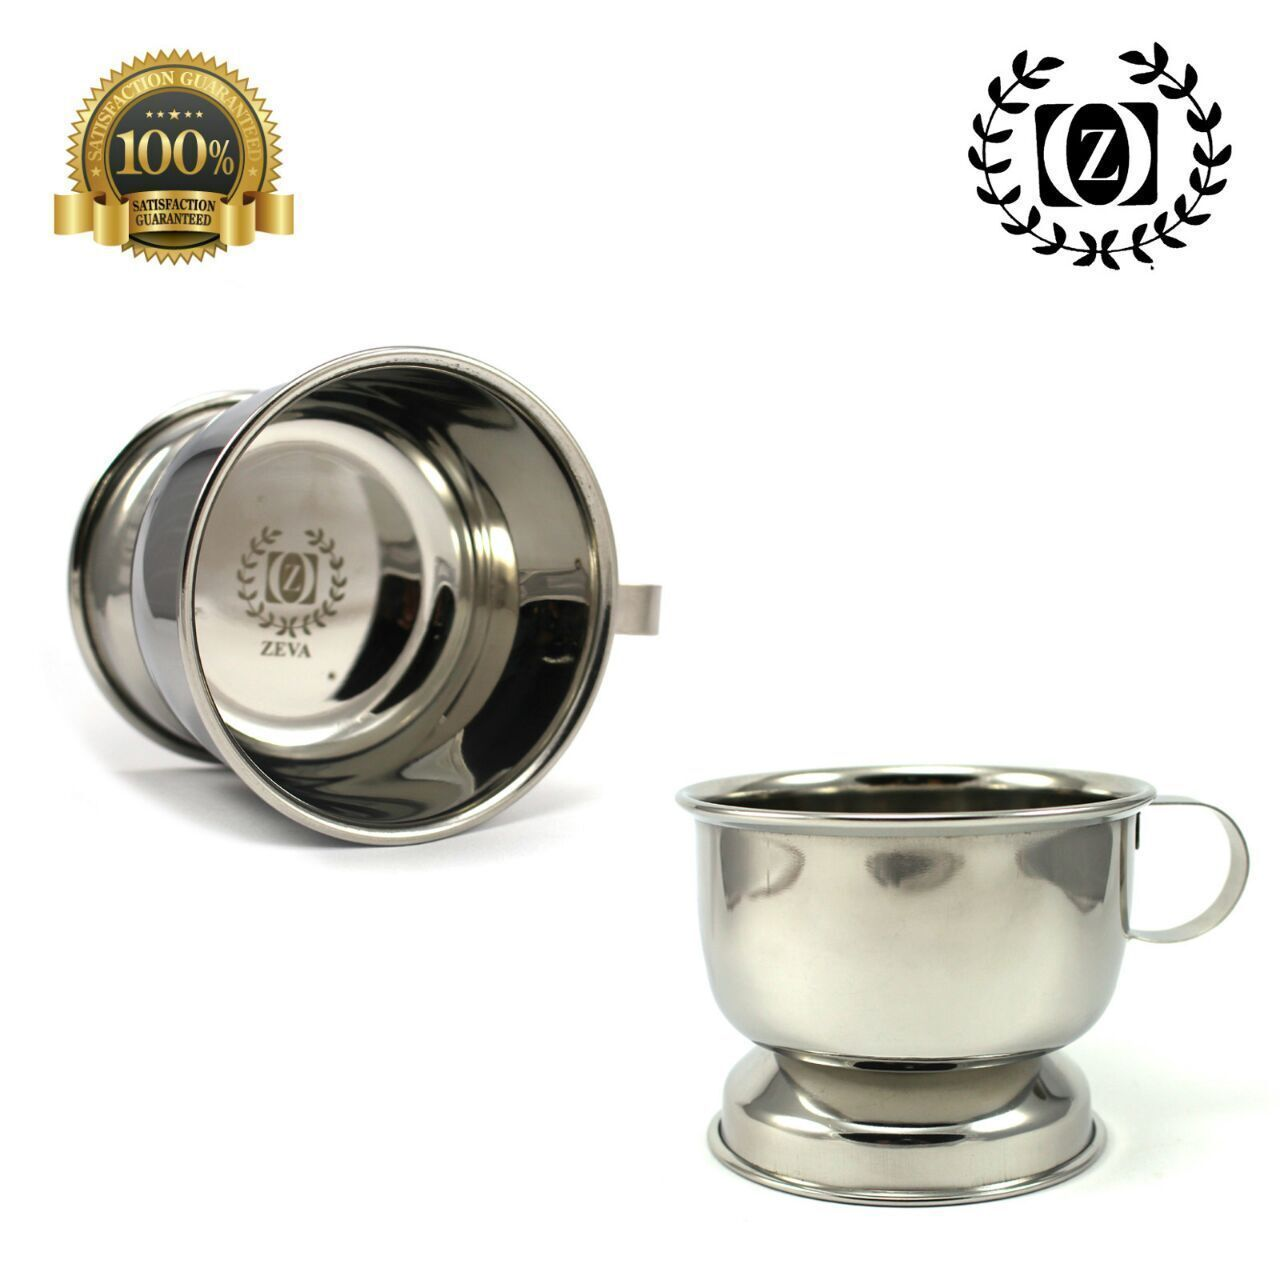 HIGH POLISHED GERMAN STAINLESS STEEL SHAVING CUP FOR SOAP/